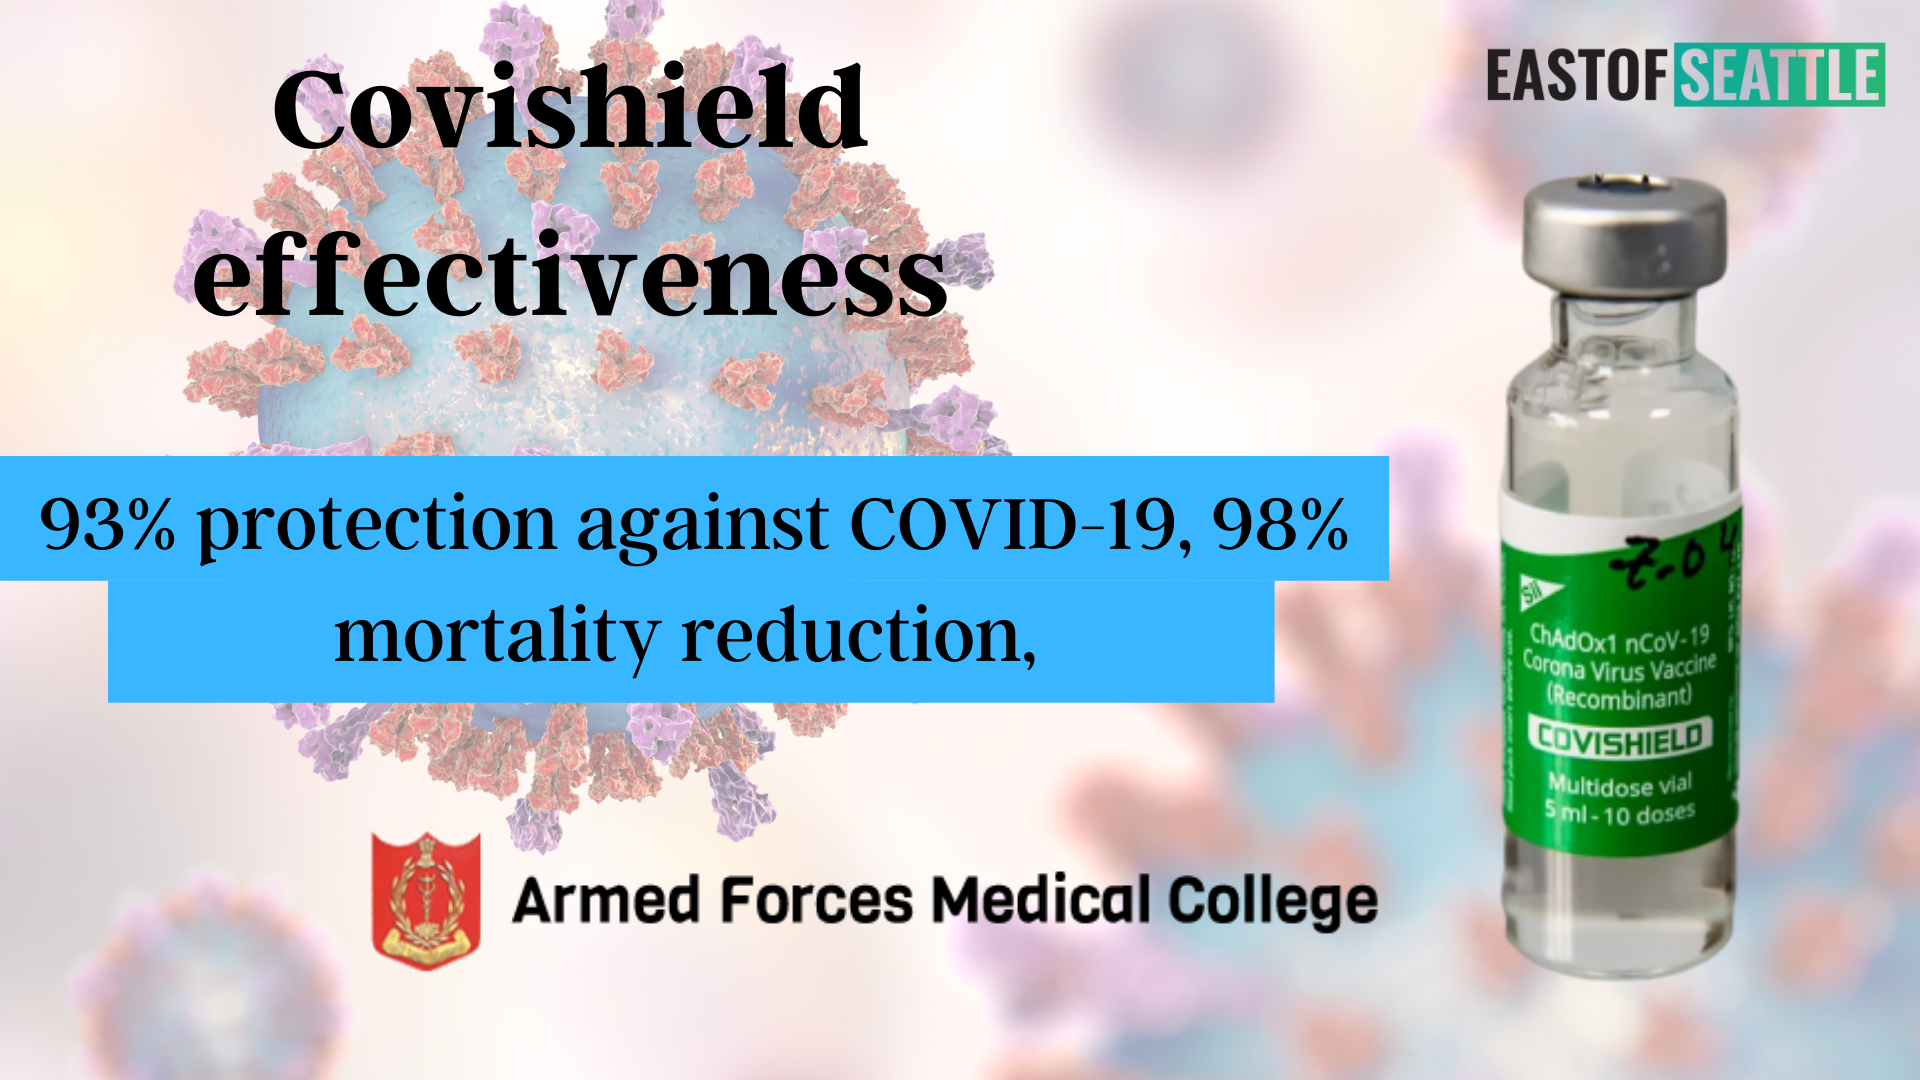 Covishield effectiveness: 93% protection against COVID-19, 98% mortality reduction, AFMC Study